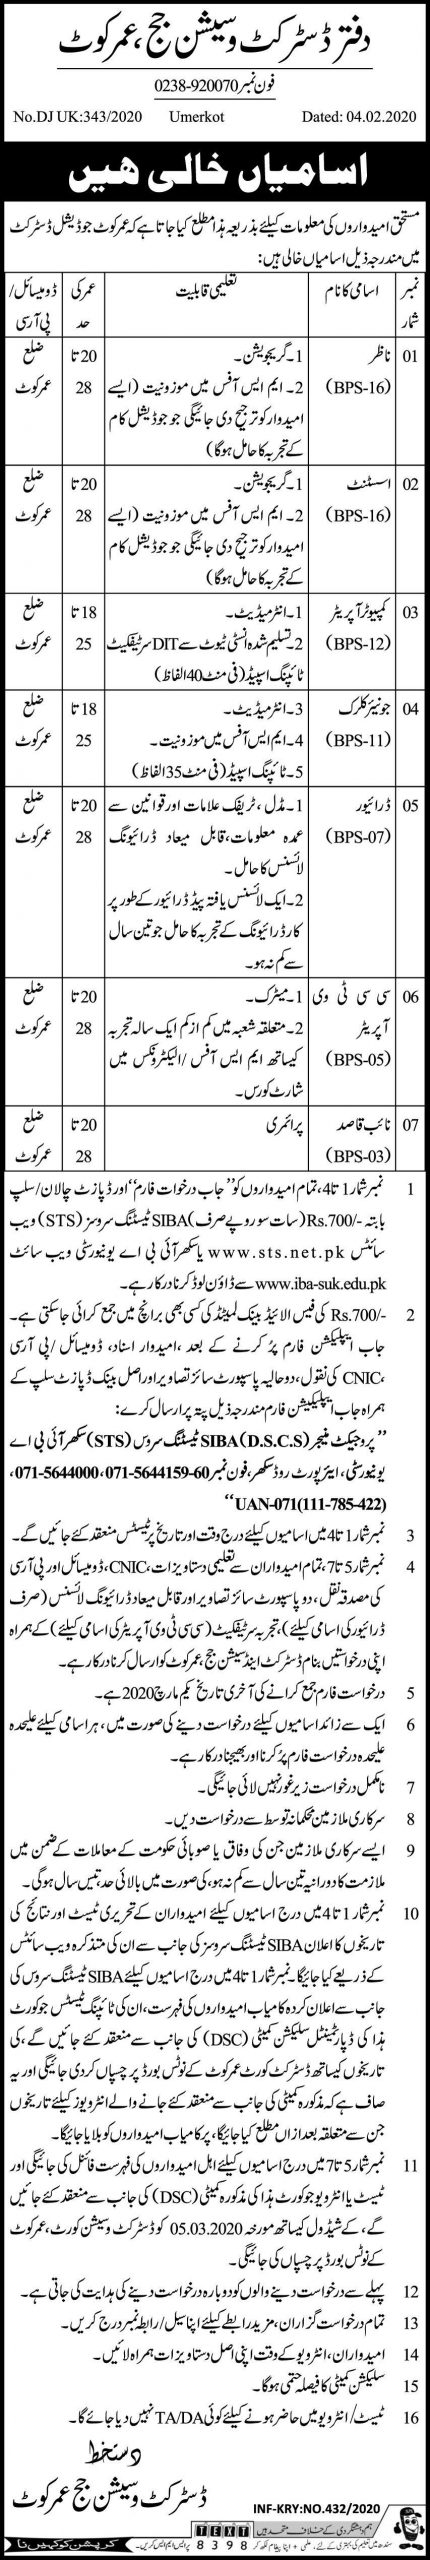 District & Session Court Umerkot Jobs 2020 advertisement